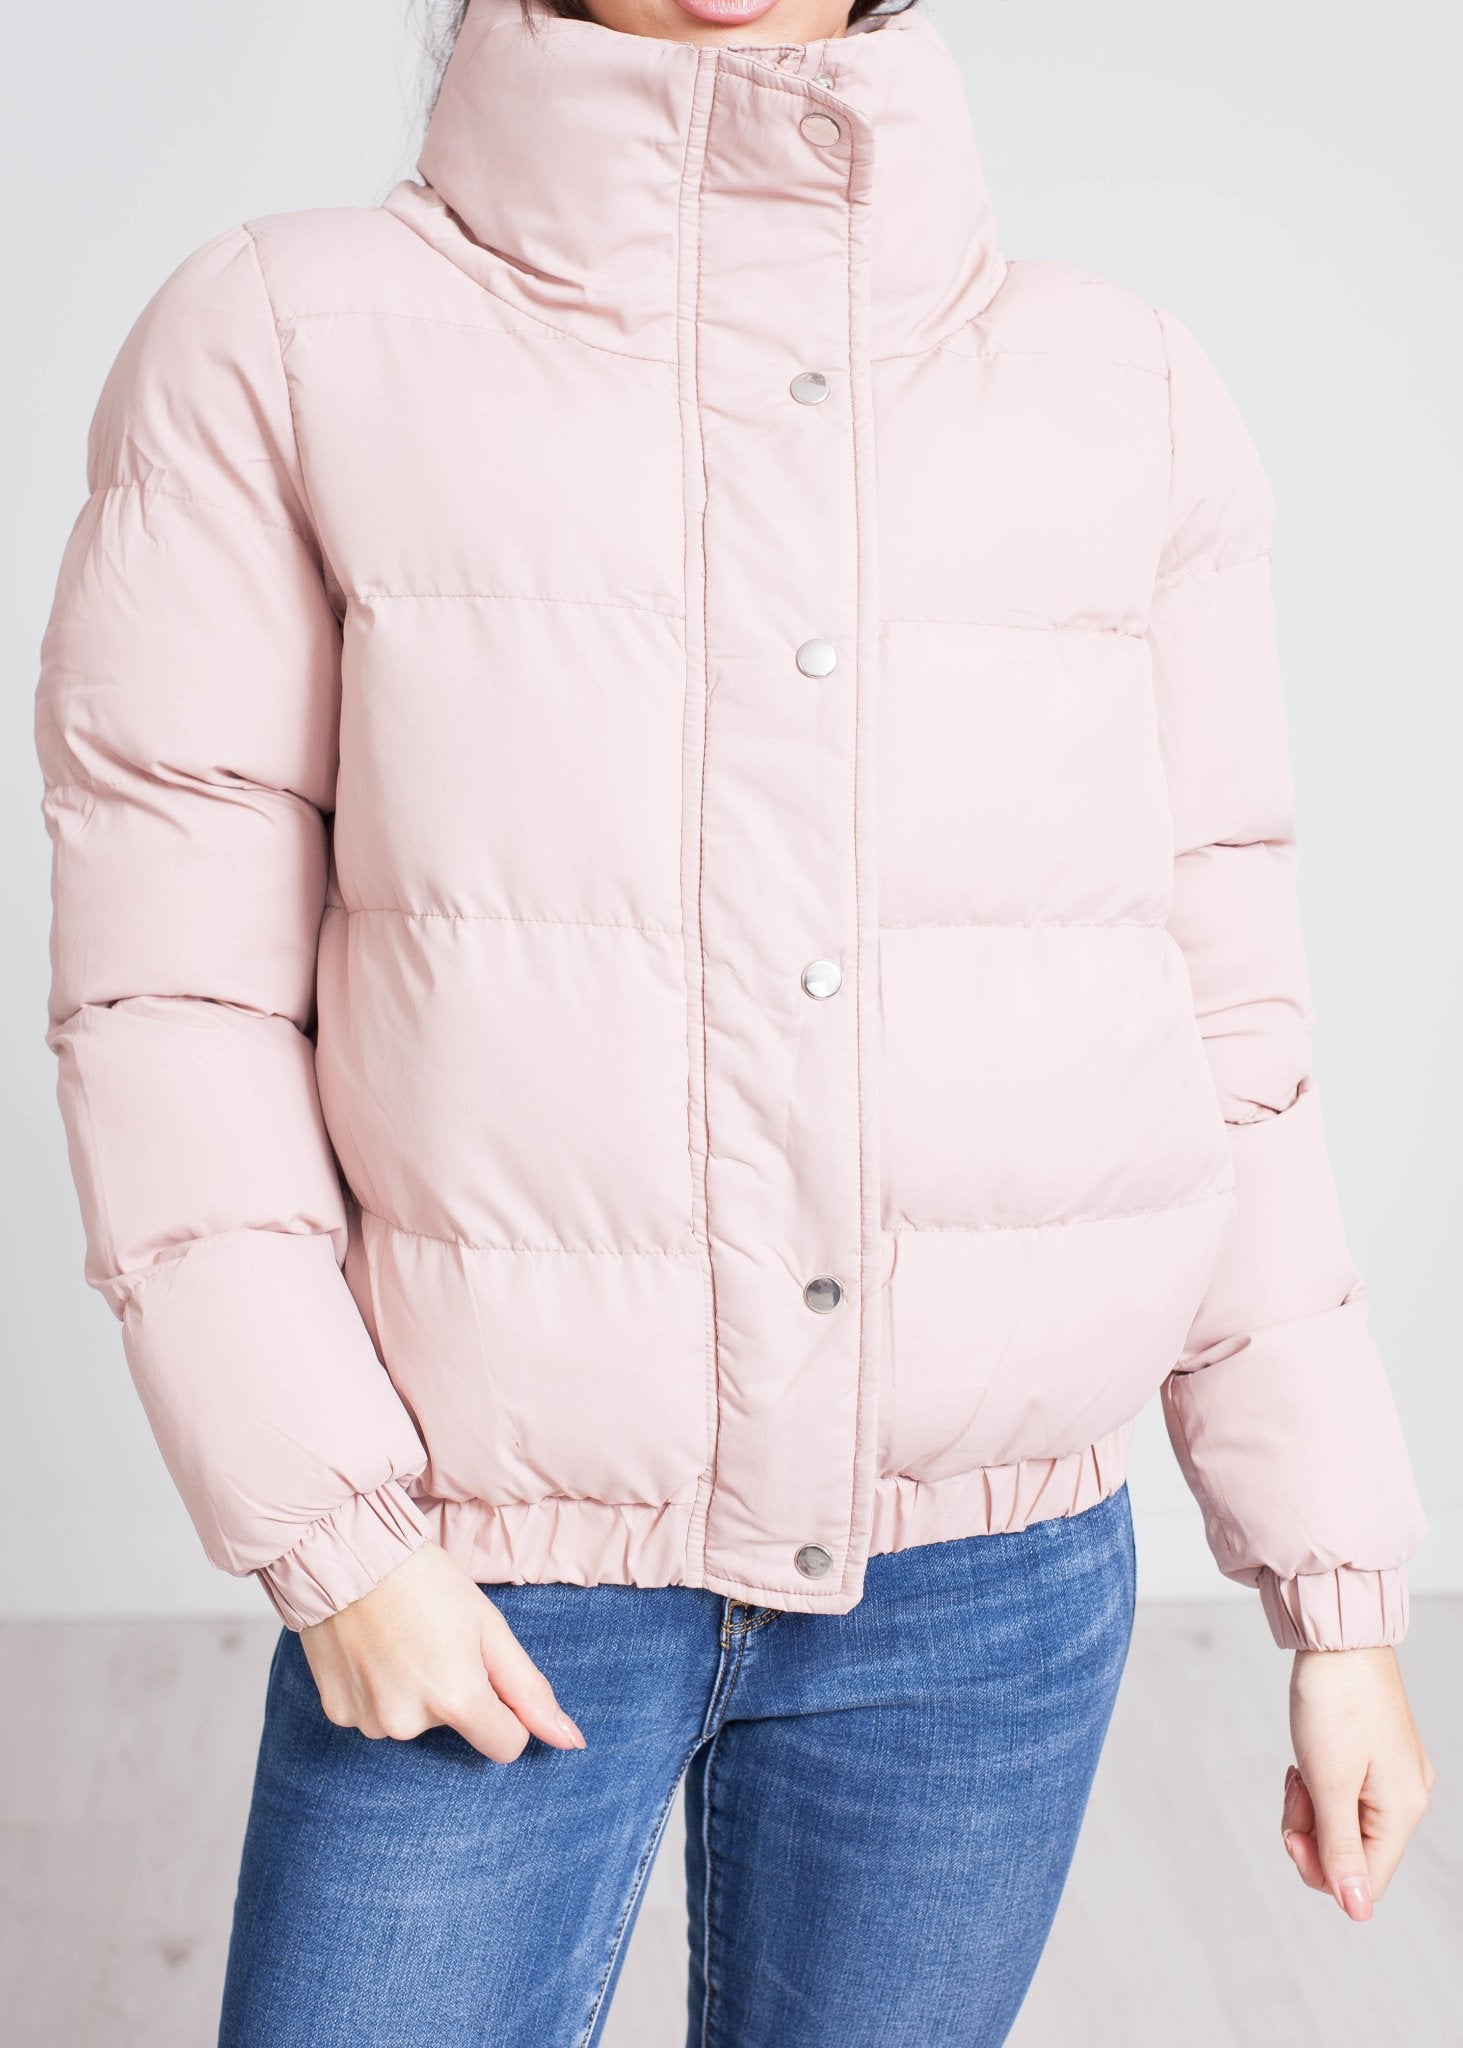 Jade Short Puffa Coat In Blush - The Walk in Wardrobe